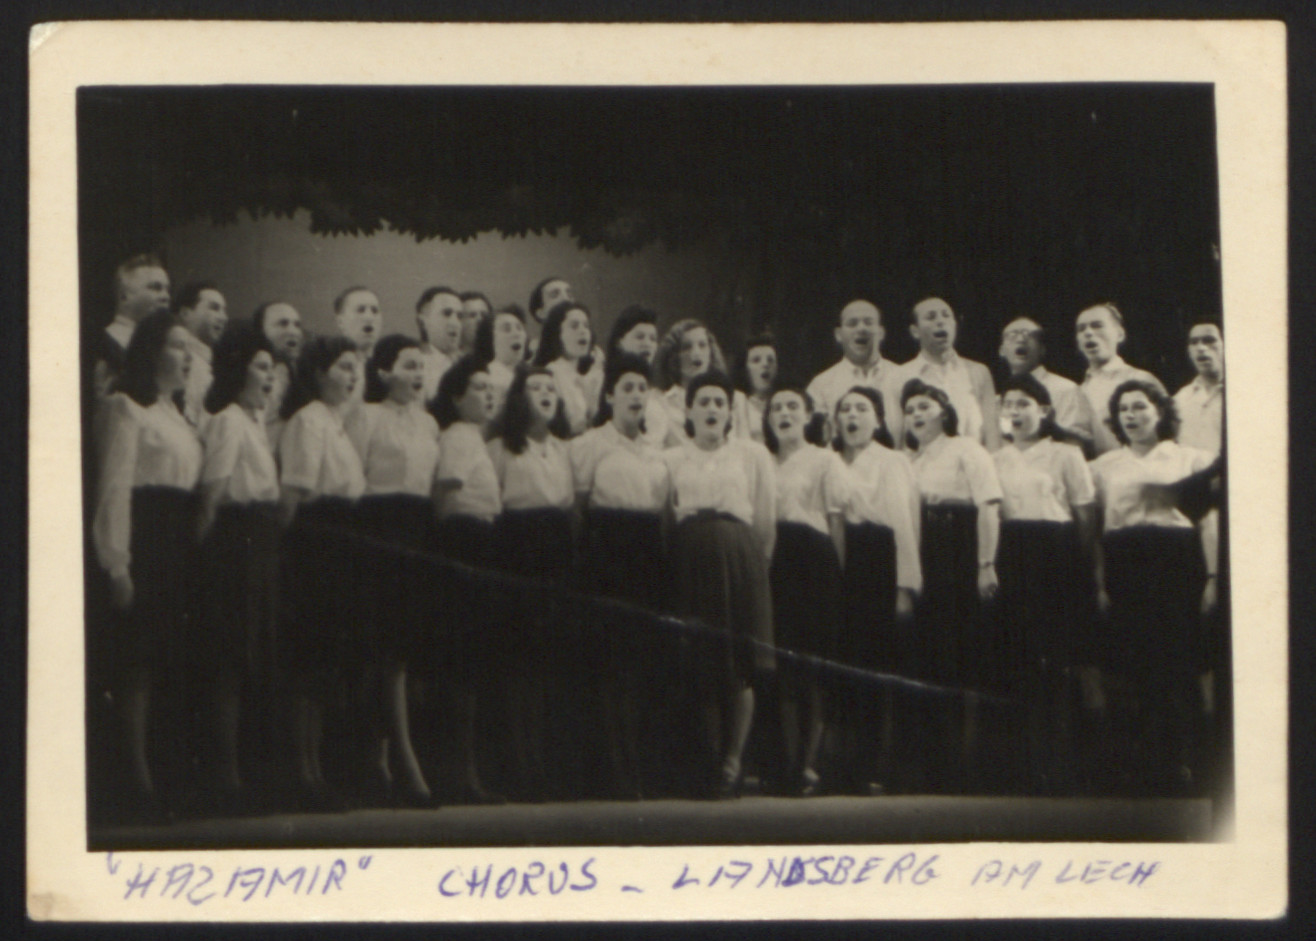 Group portrait of members of the Hazamir Chorale in the Landsberg displaced persons camp.  Among those pictured is Nechama Santocki (second from the left).